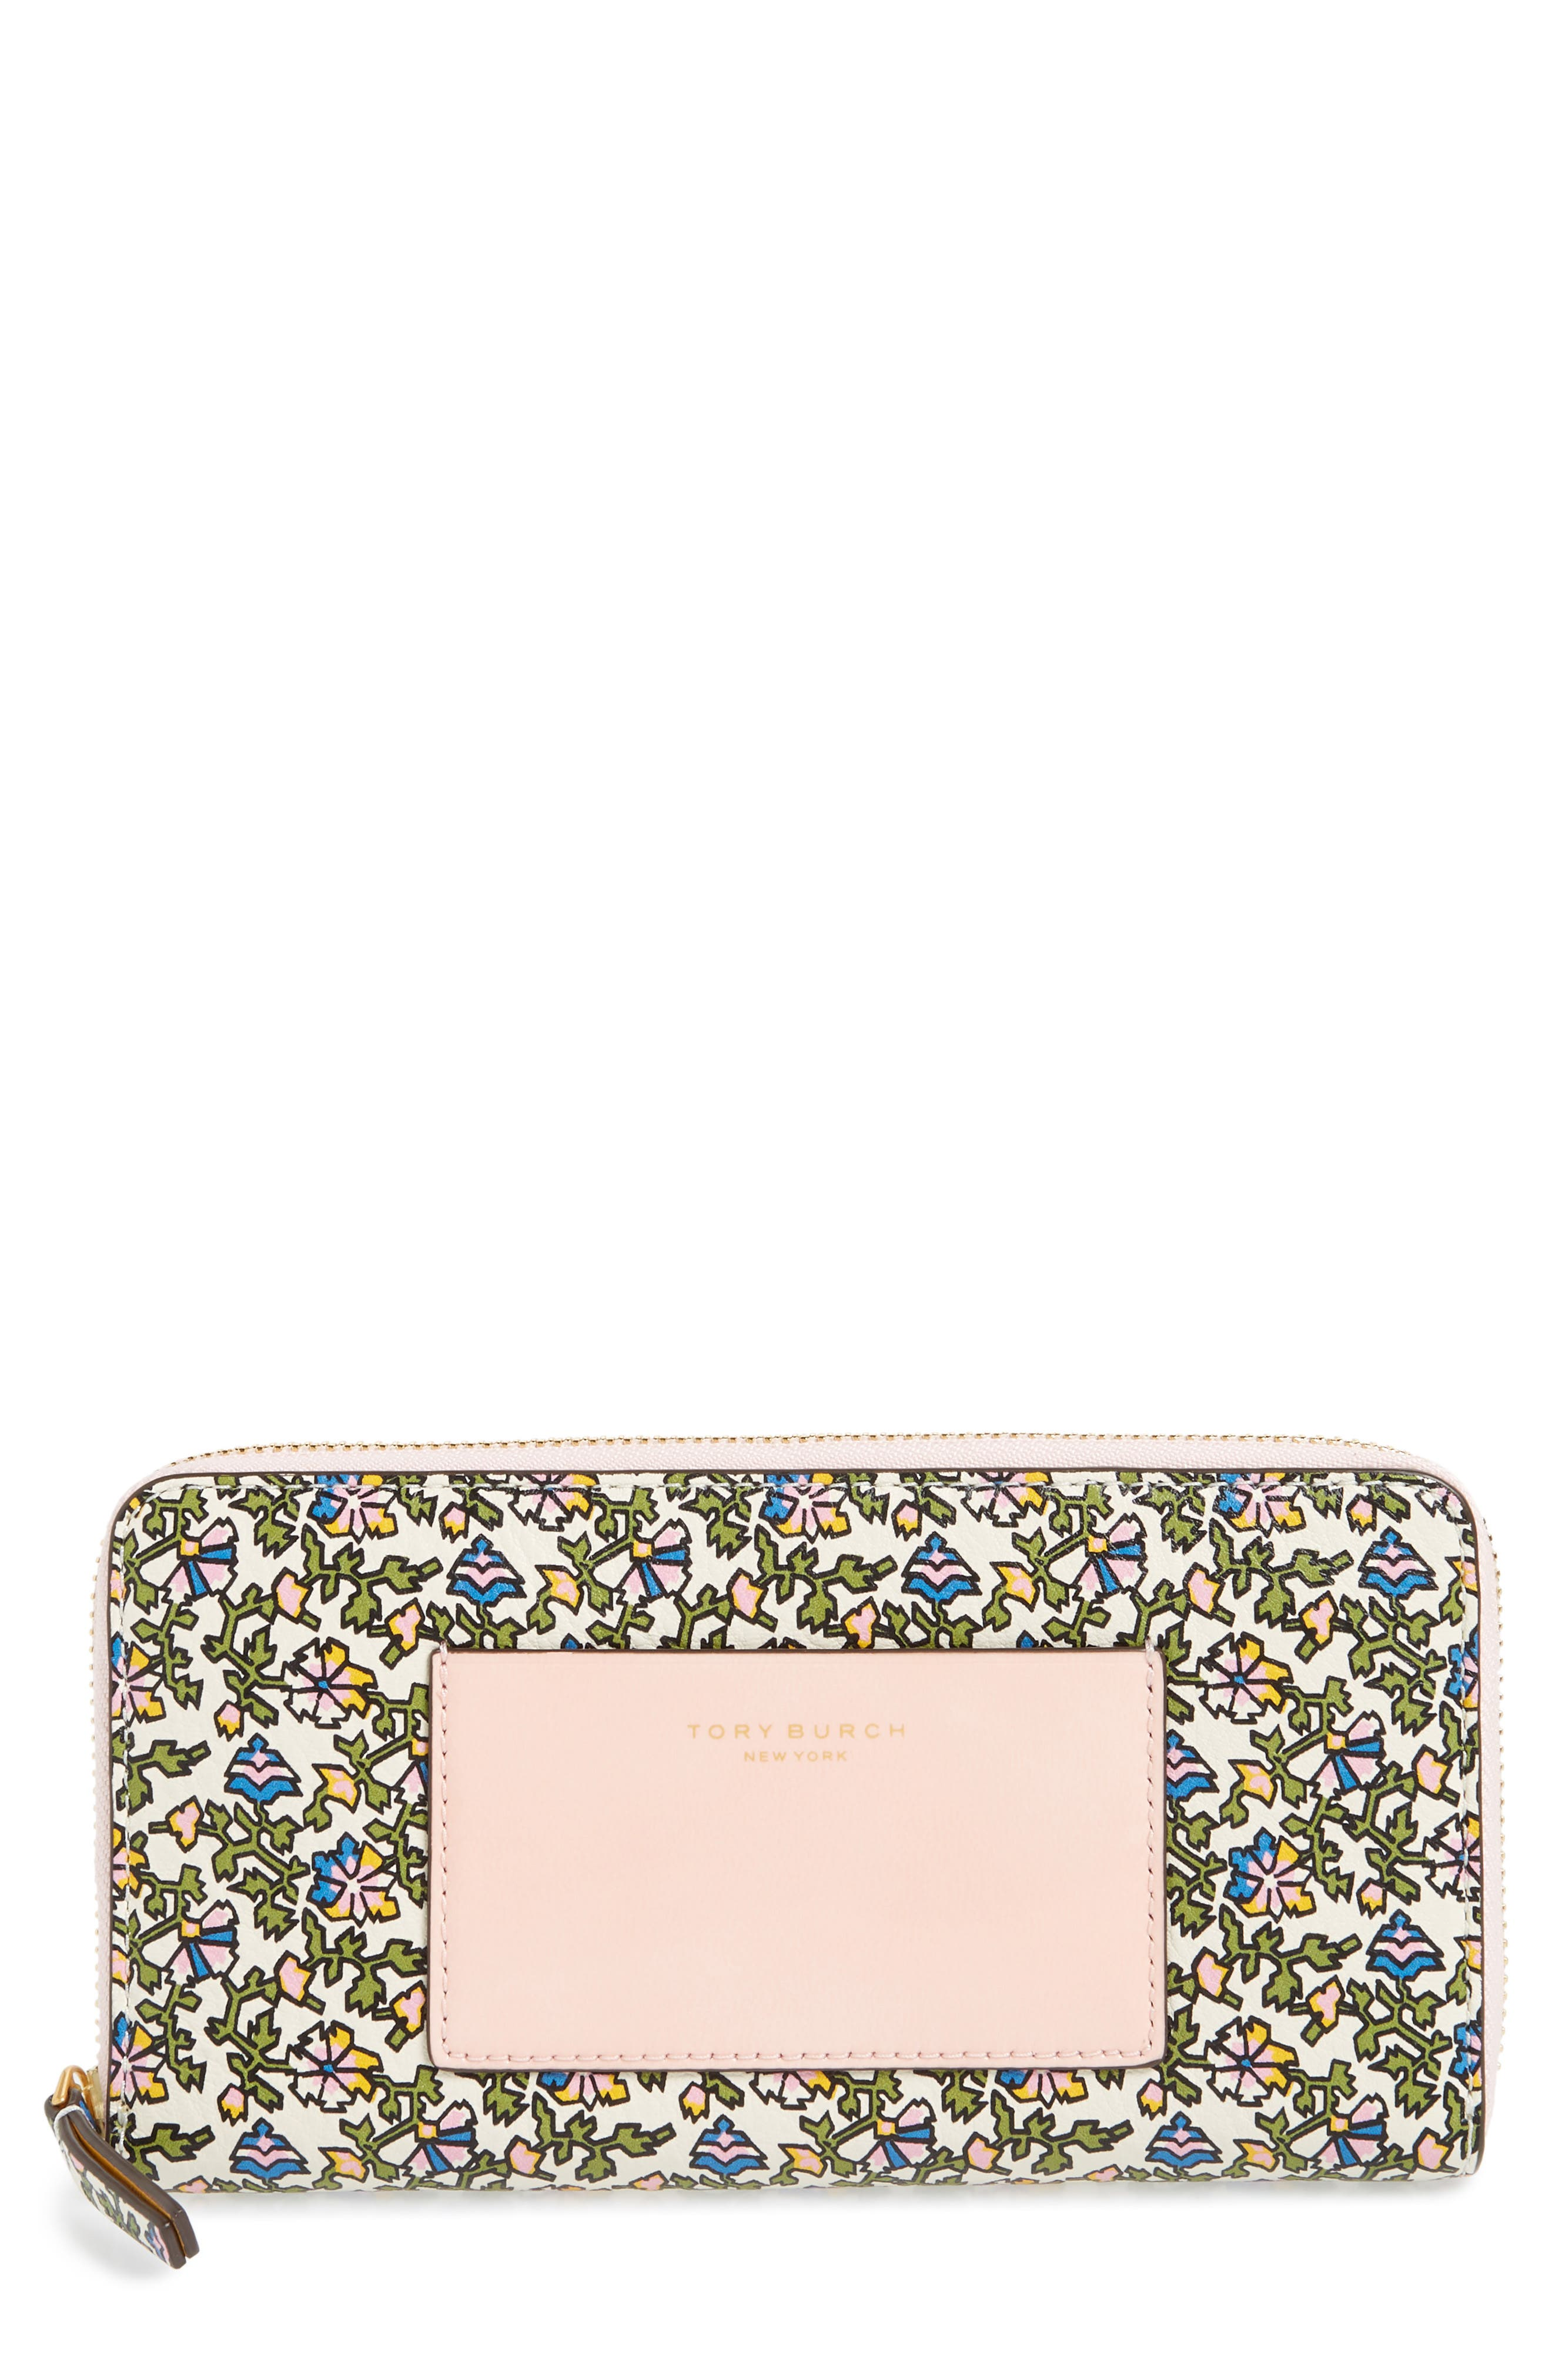 Floral Print Leather Zip Around Wallet,                         Main,                         color, 100